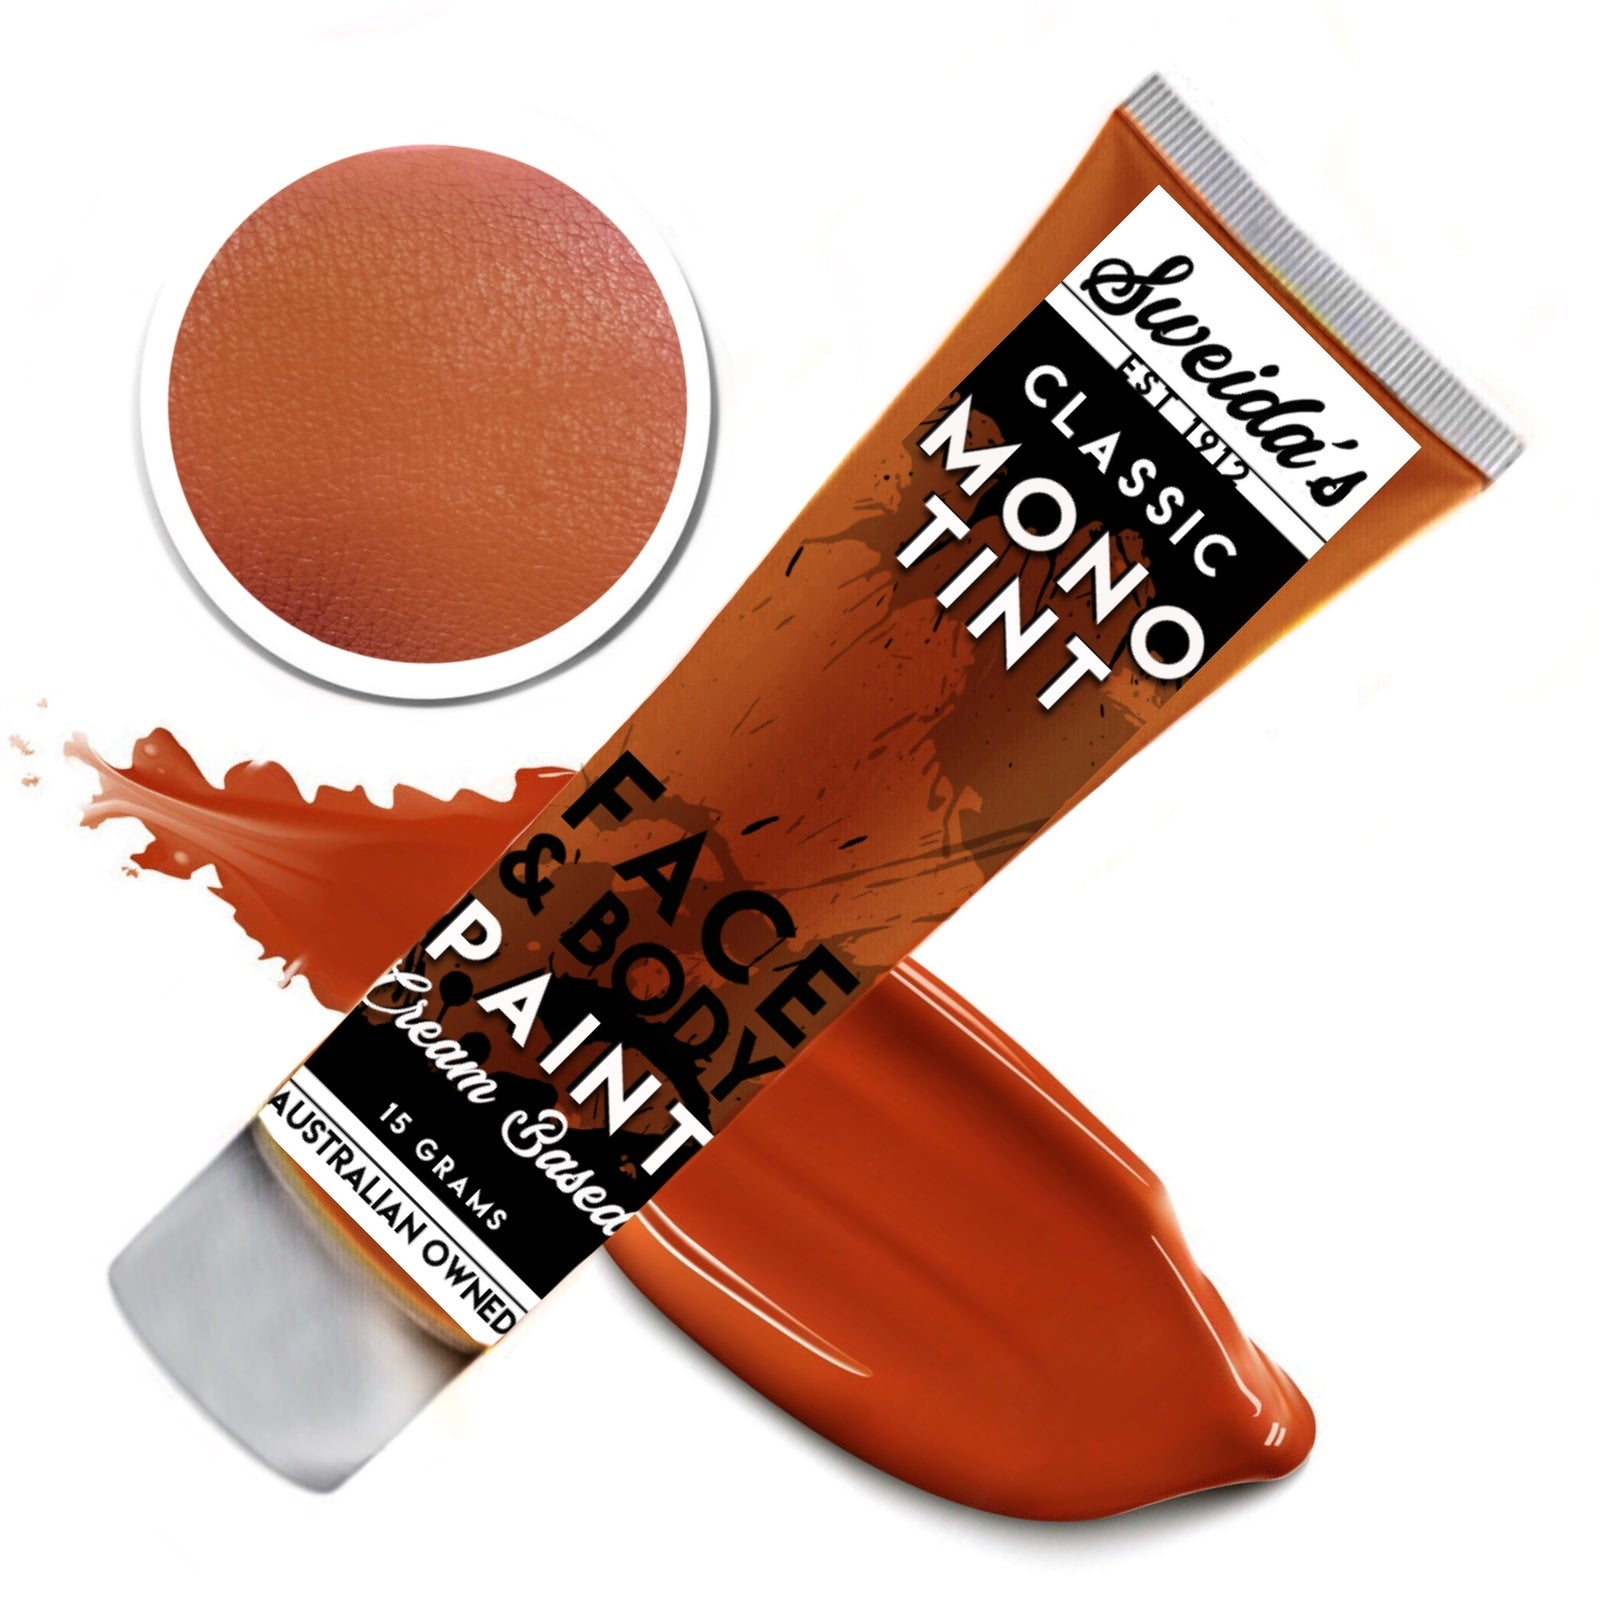 Warm Brown - Monotint Liquid Face & Body Paint 15g